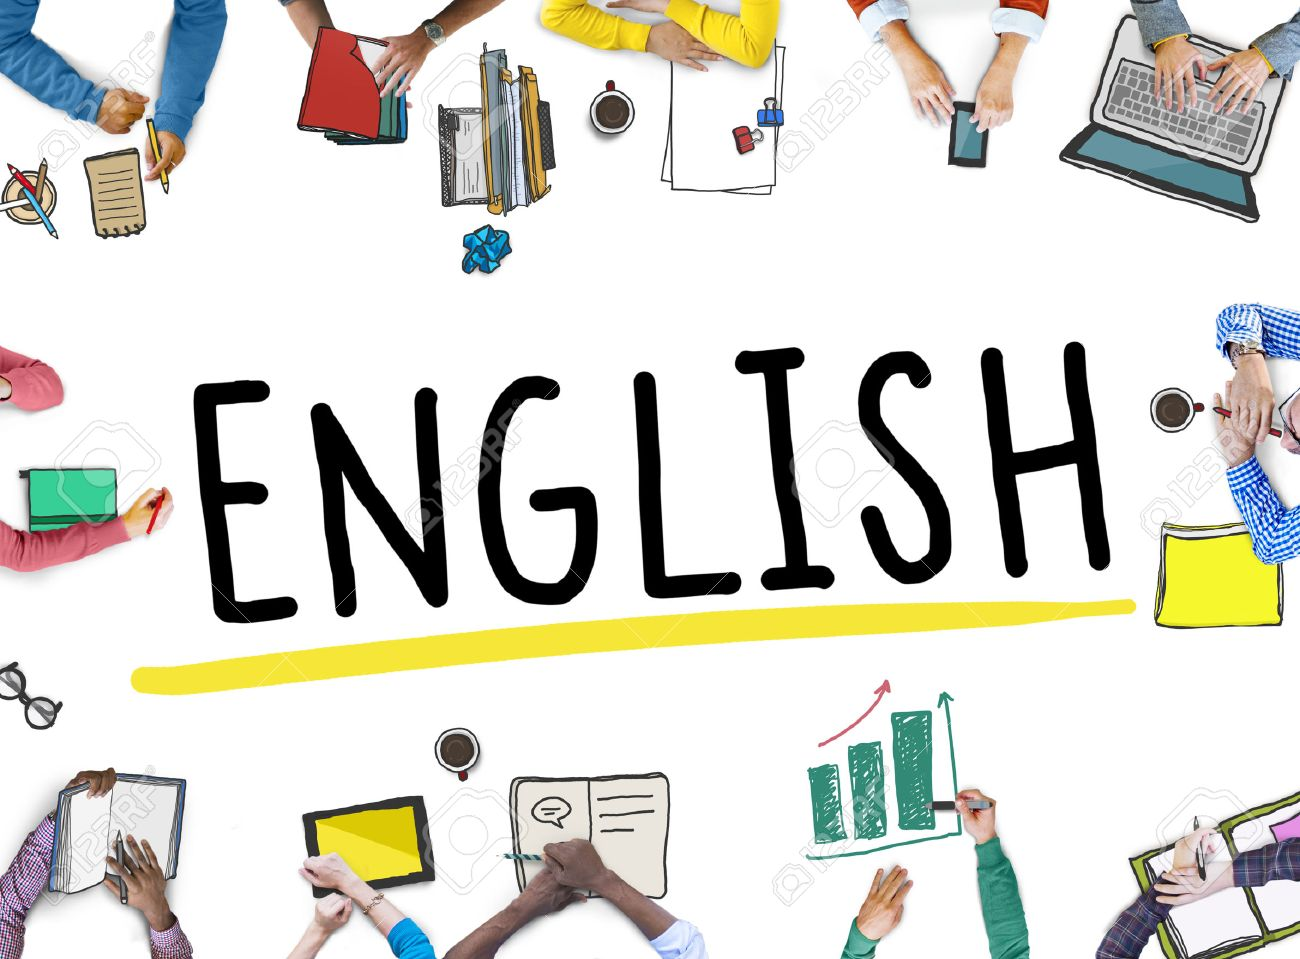 52351011-english-british-england-language-education-concept